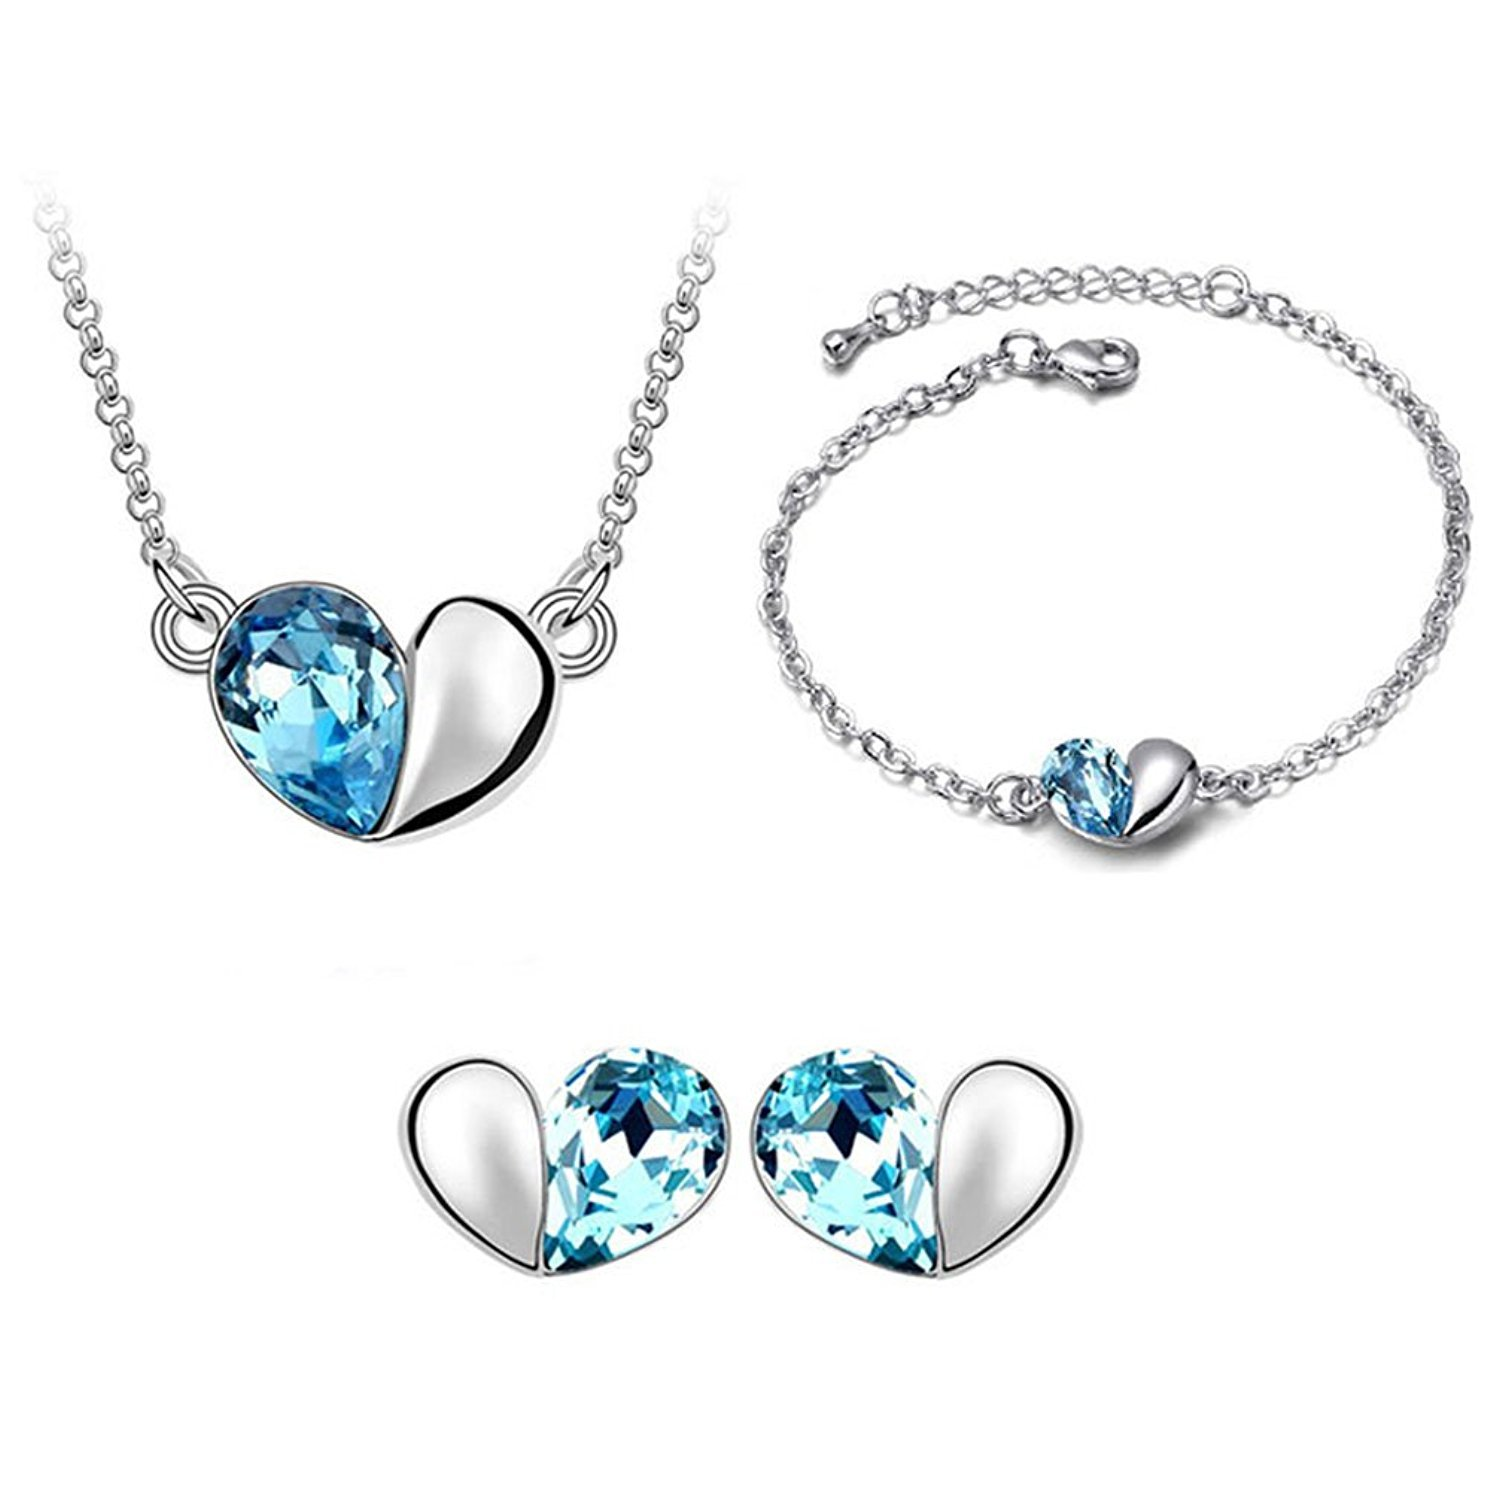 Dame GS Silver-tone Love Heart Swarovski Elements Jewelry Sets, Crystal Necklace, Bracelets, Earrings Ensemble Fashion Jewelry Dame GS Fashion Jewelry